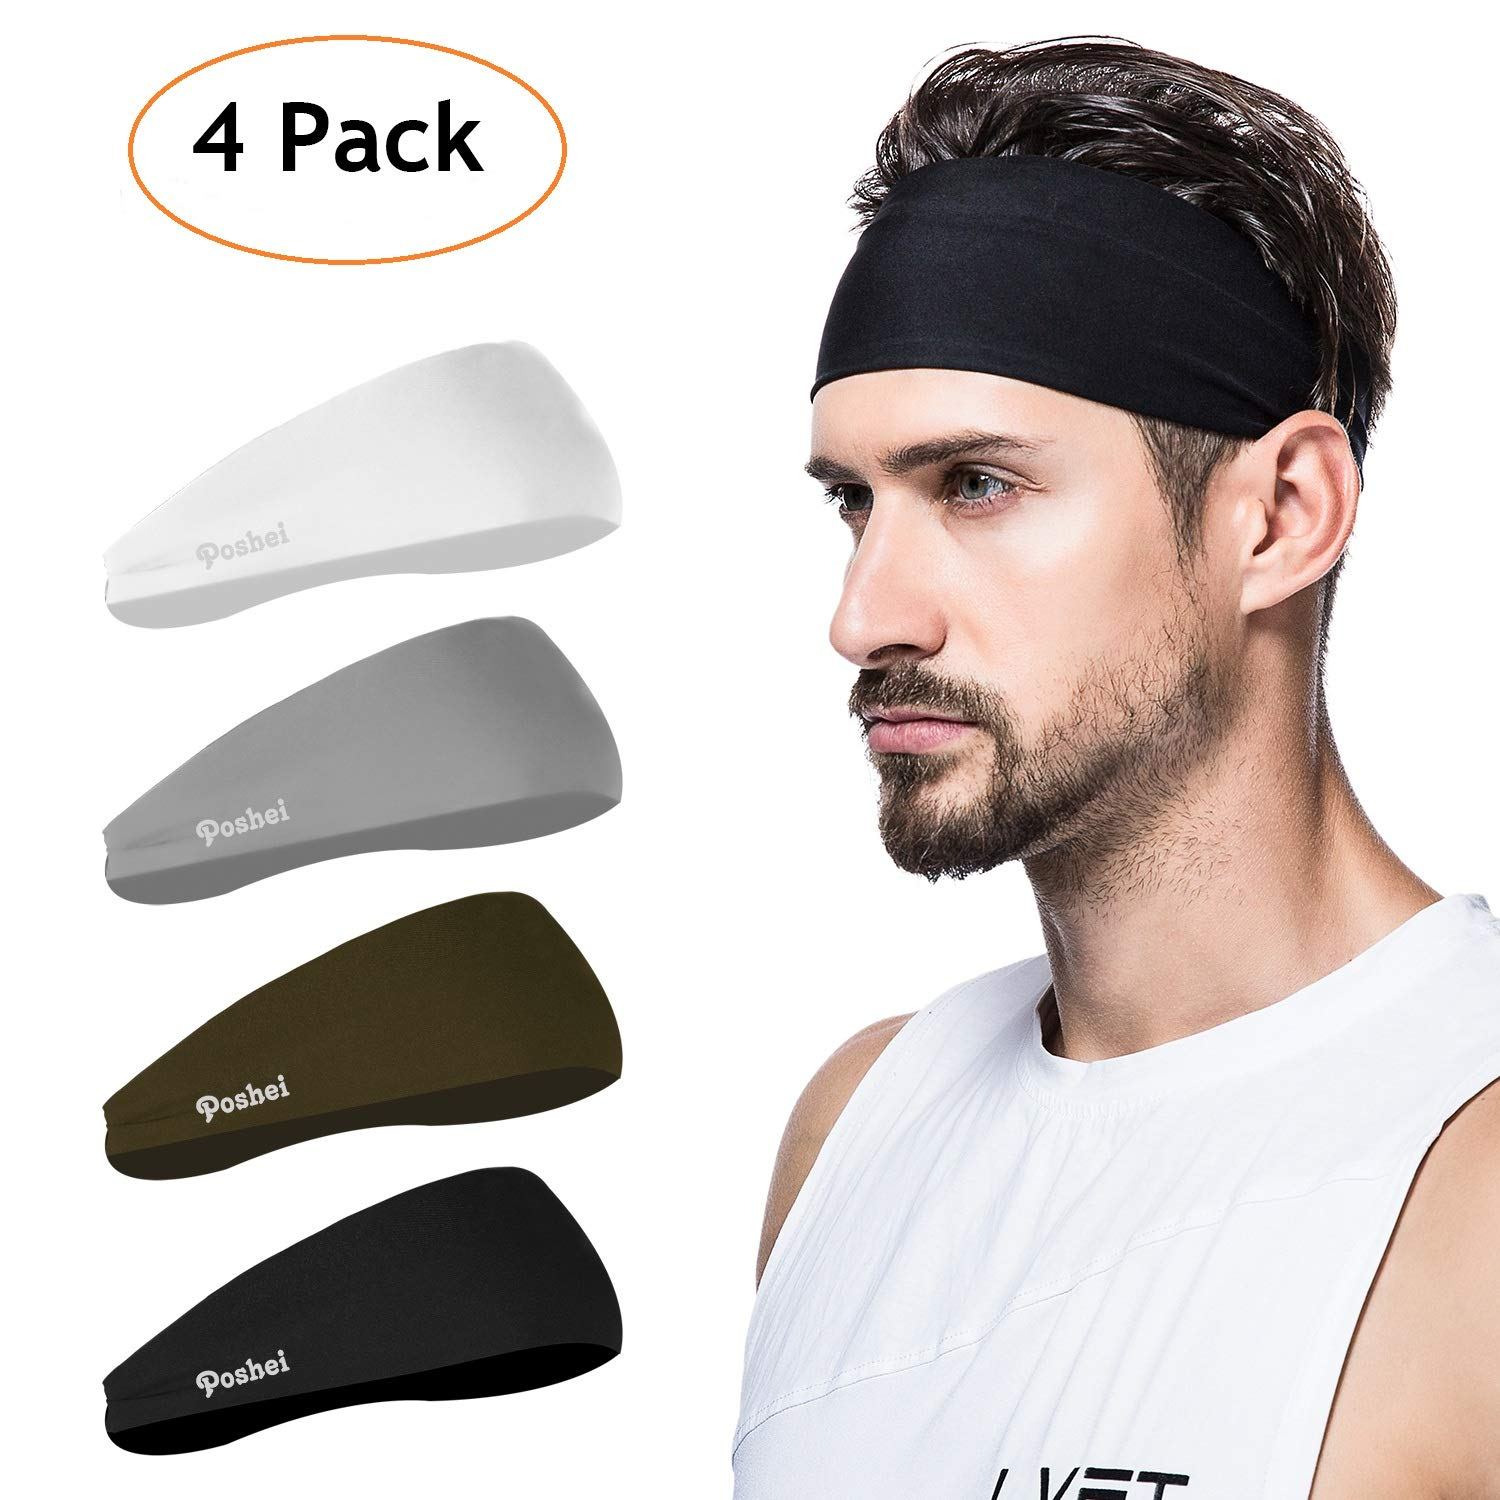 poshei Mens Headband (4 Pack), Mens Sweatband & Sports Headband for Running, Crossfit, Cycling, Yoga, Basketball - Stretchy Moisture Wicking Unisex Hairband by poshei